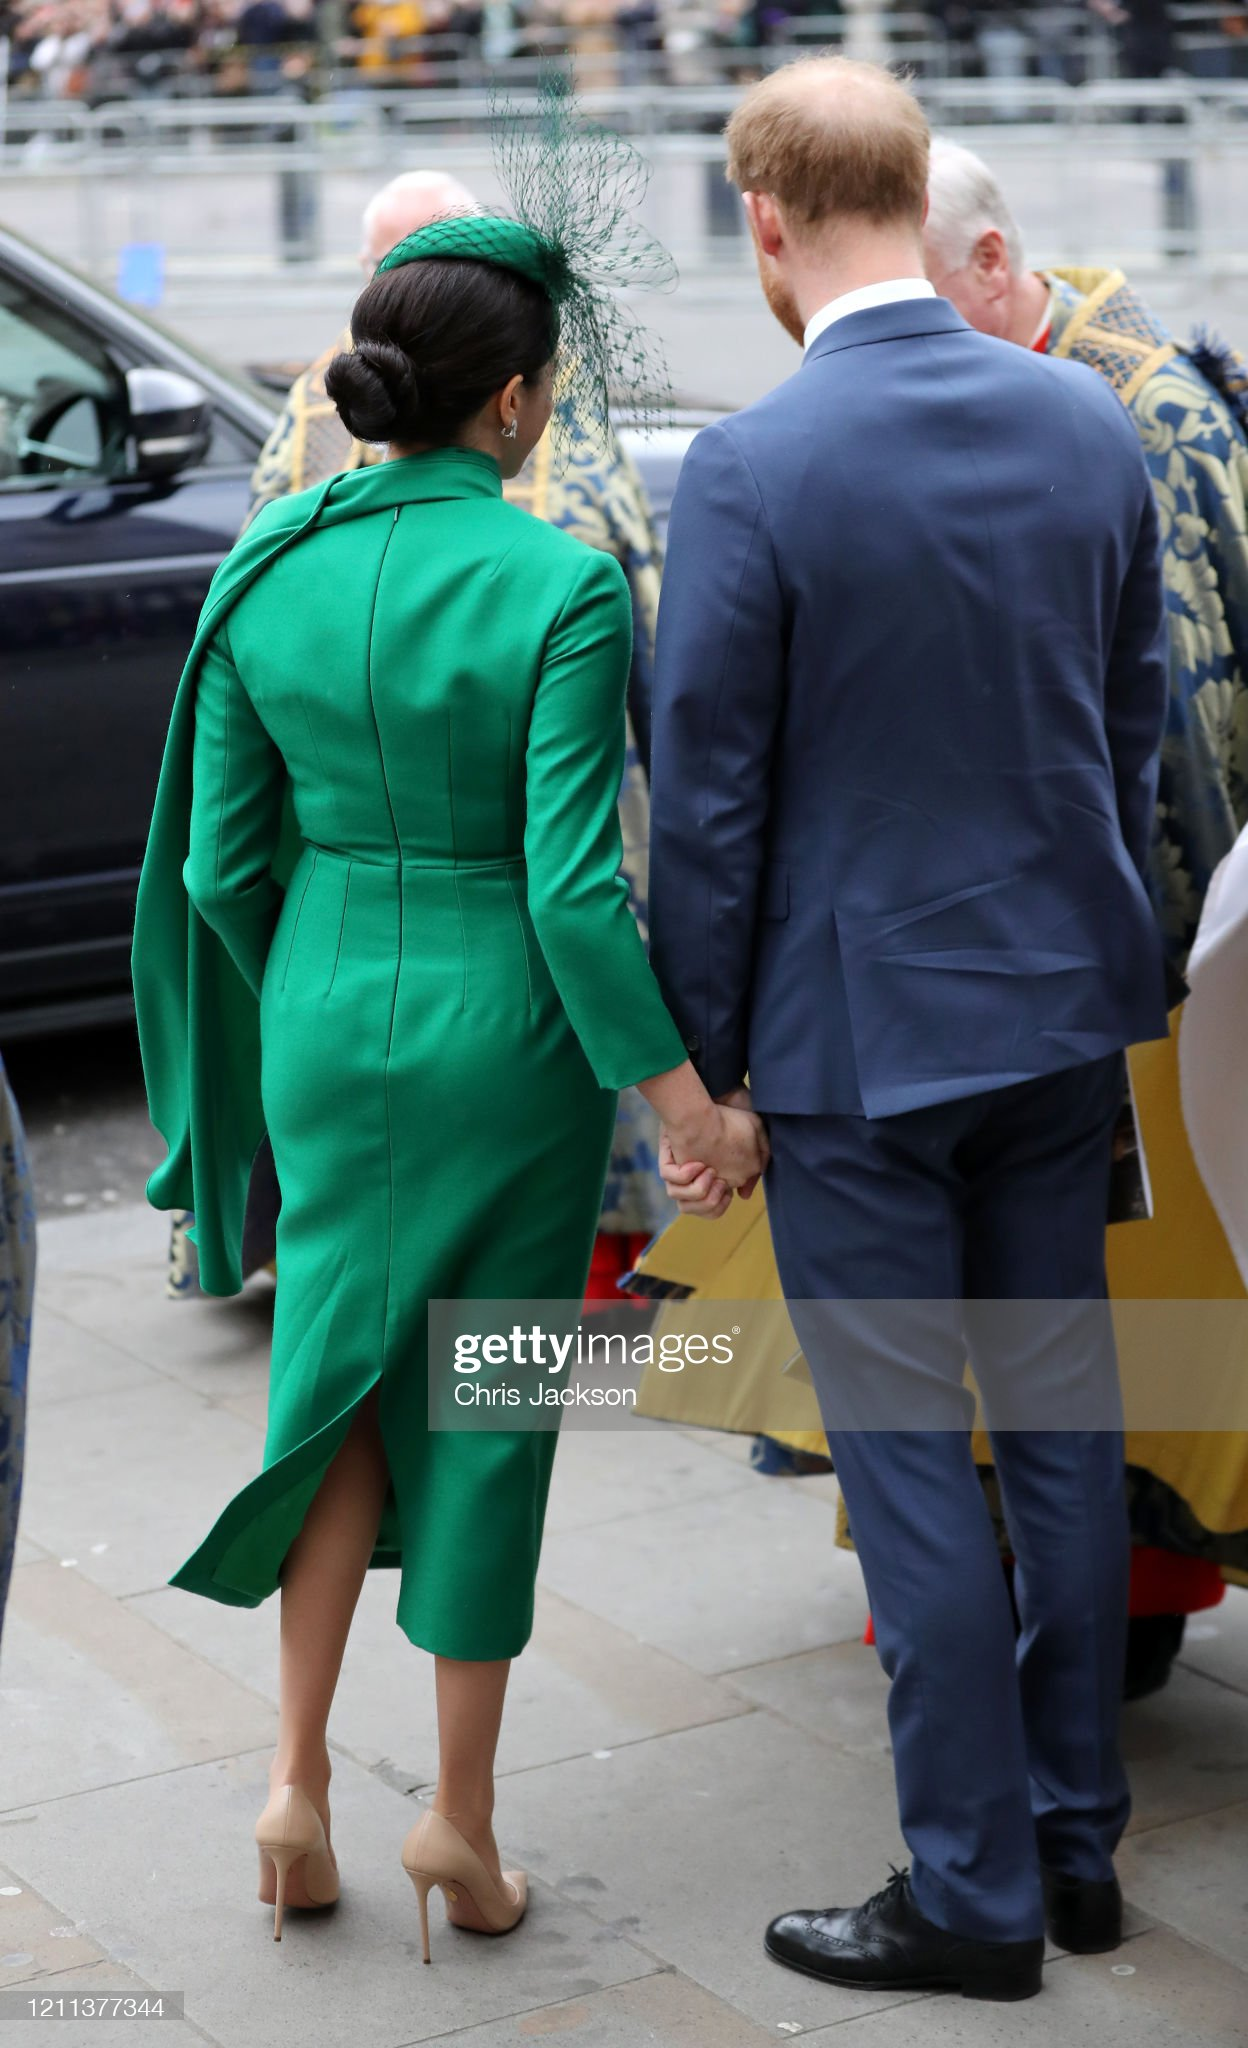 https://media.gettyimages.com/photos/meghan-duchess-of-sussex-and-prince-harry-duke-of-sussex-depart-the-picture-id1211377344?s=2048x2048